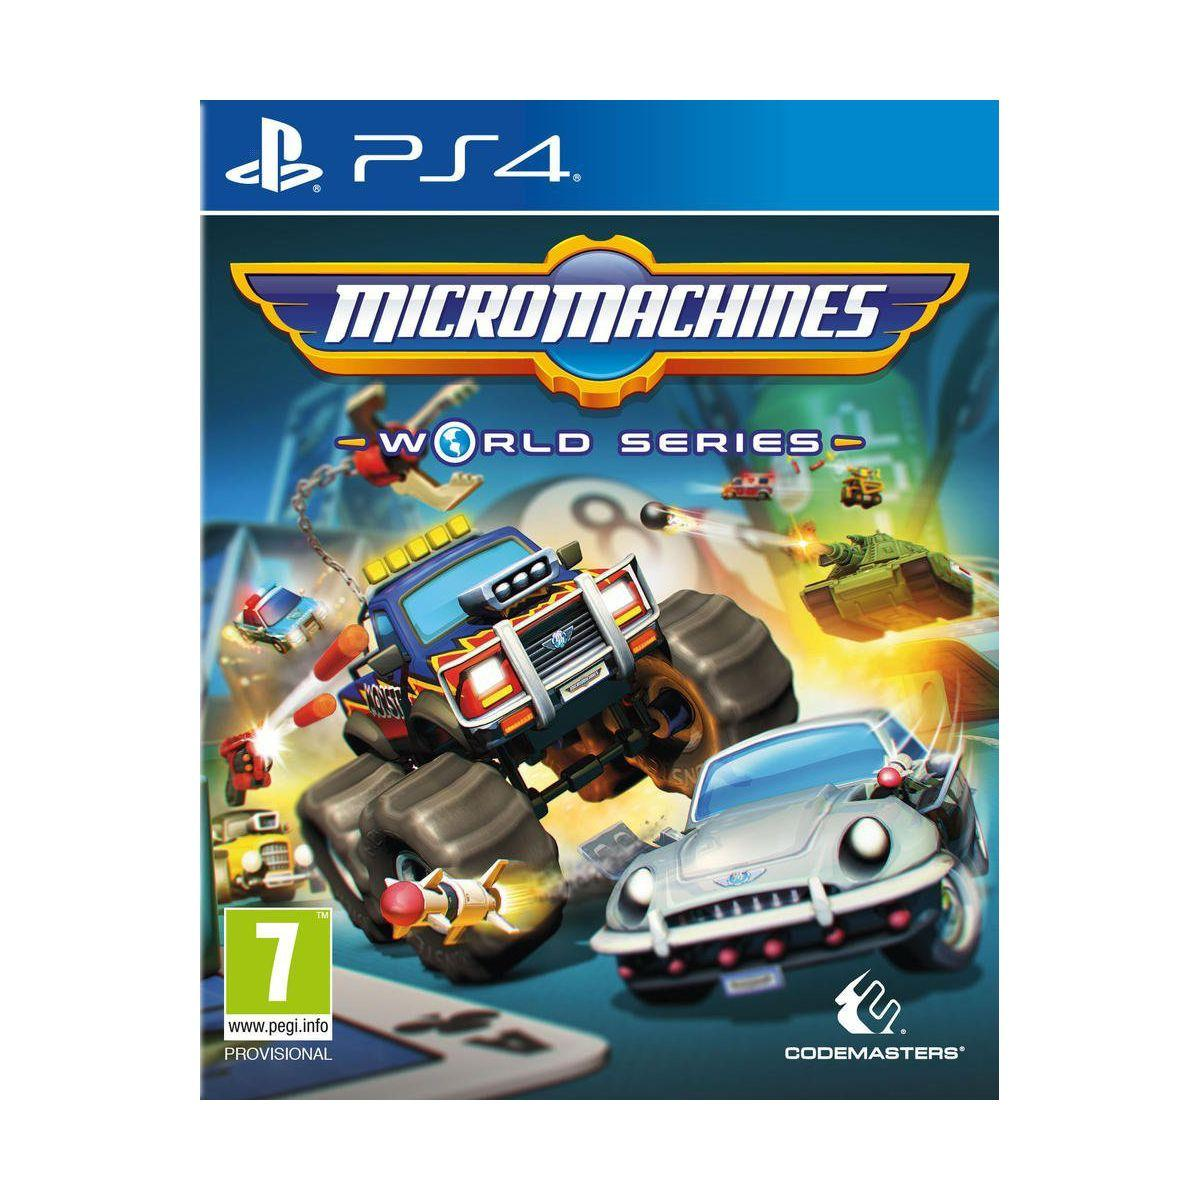 Jeu ps4 koch media micro machines world - 2% de remise immédiate avec le code : cool2 (photo)